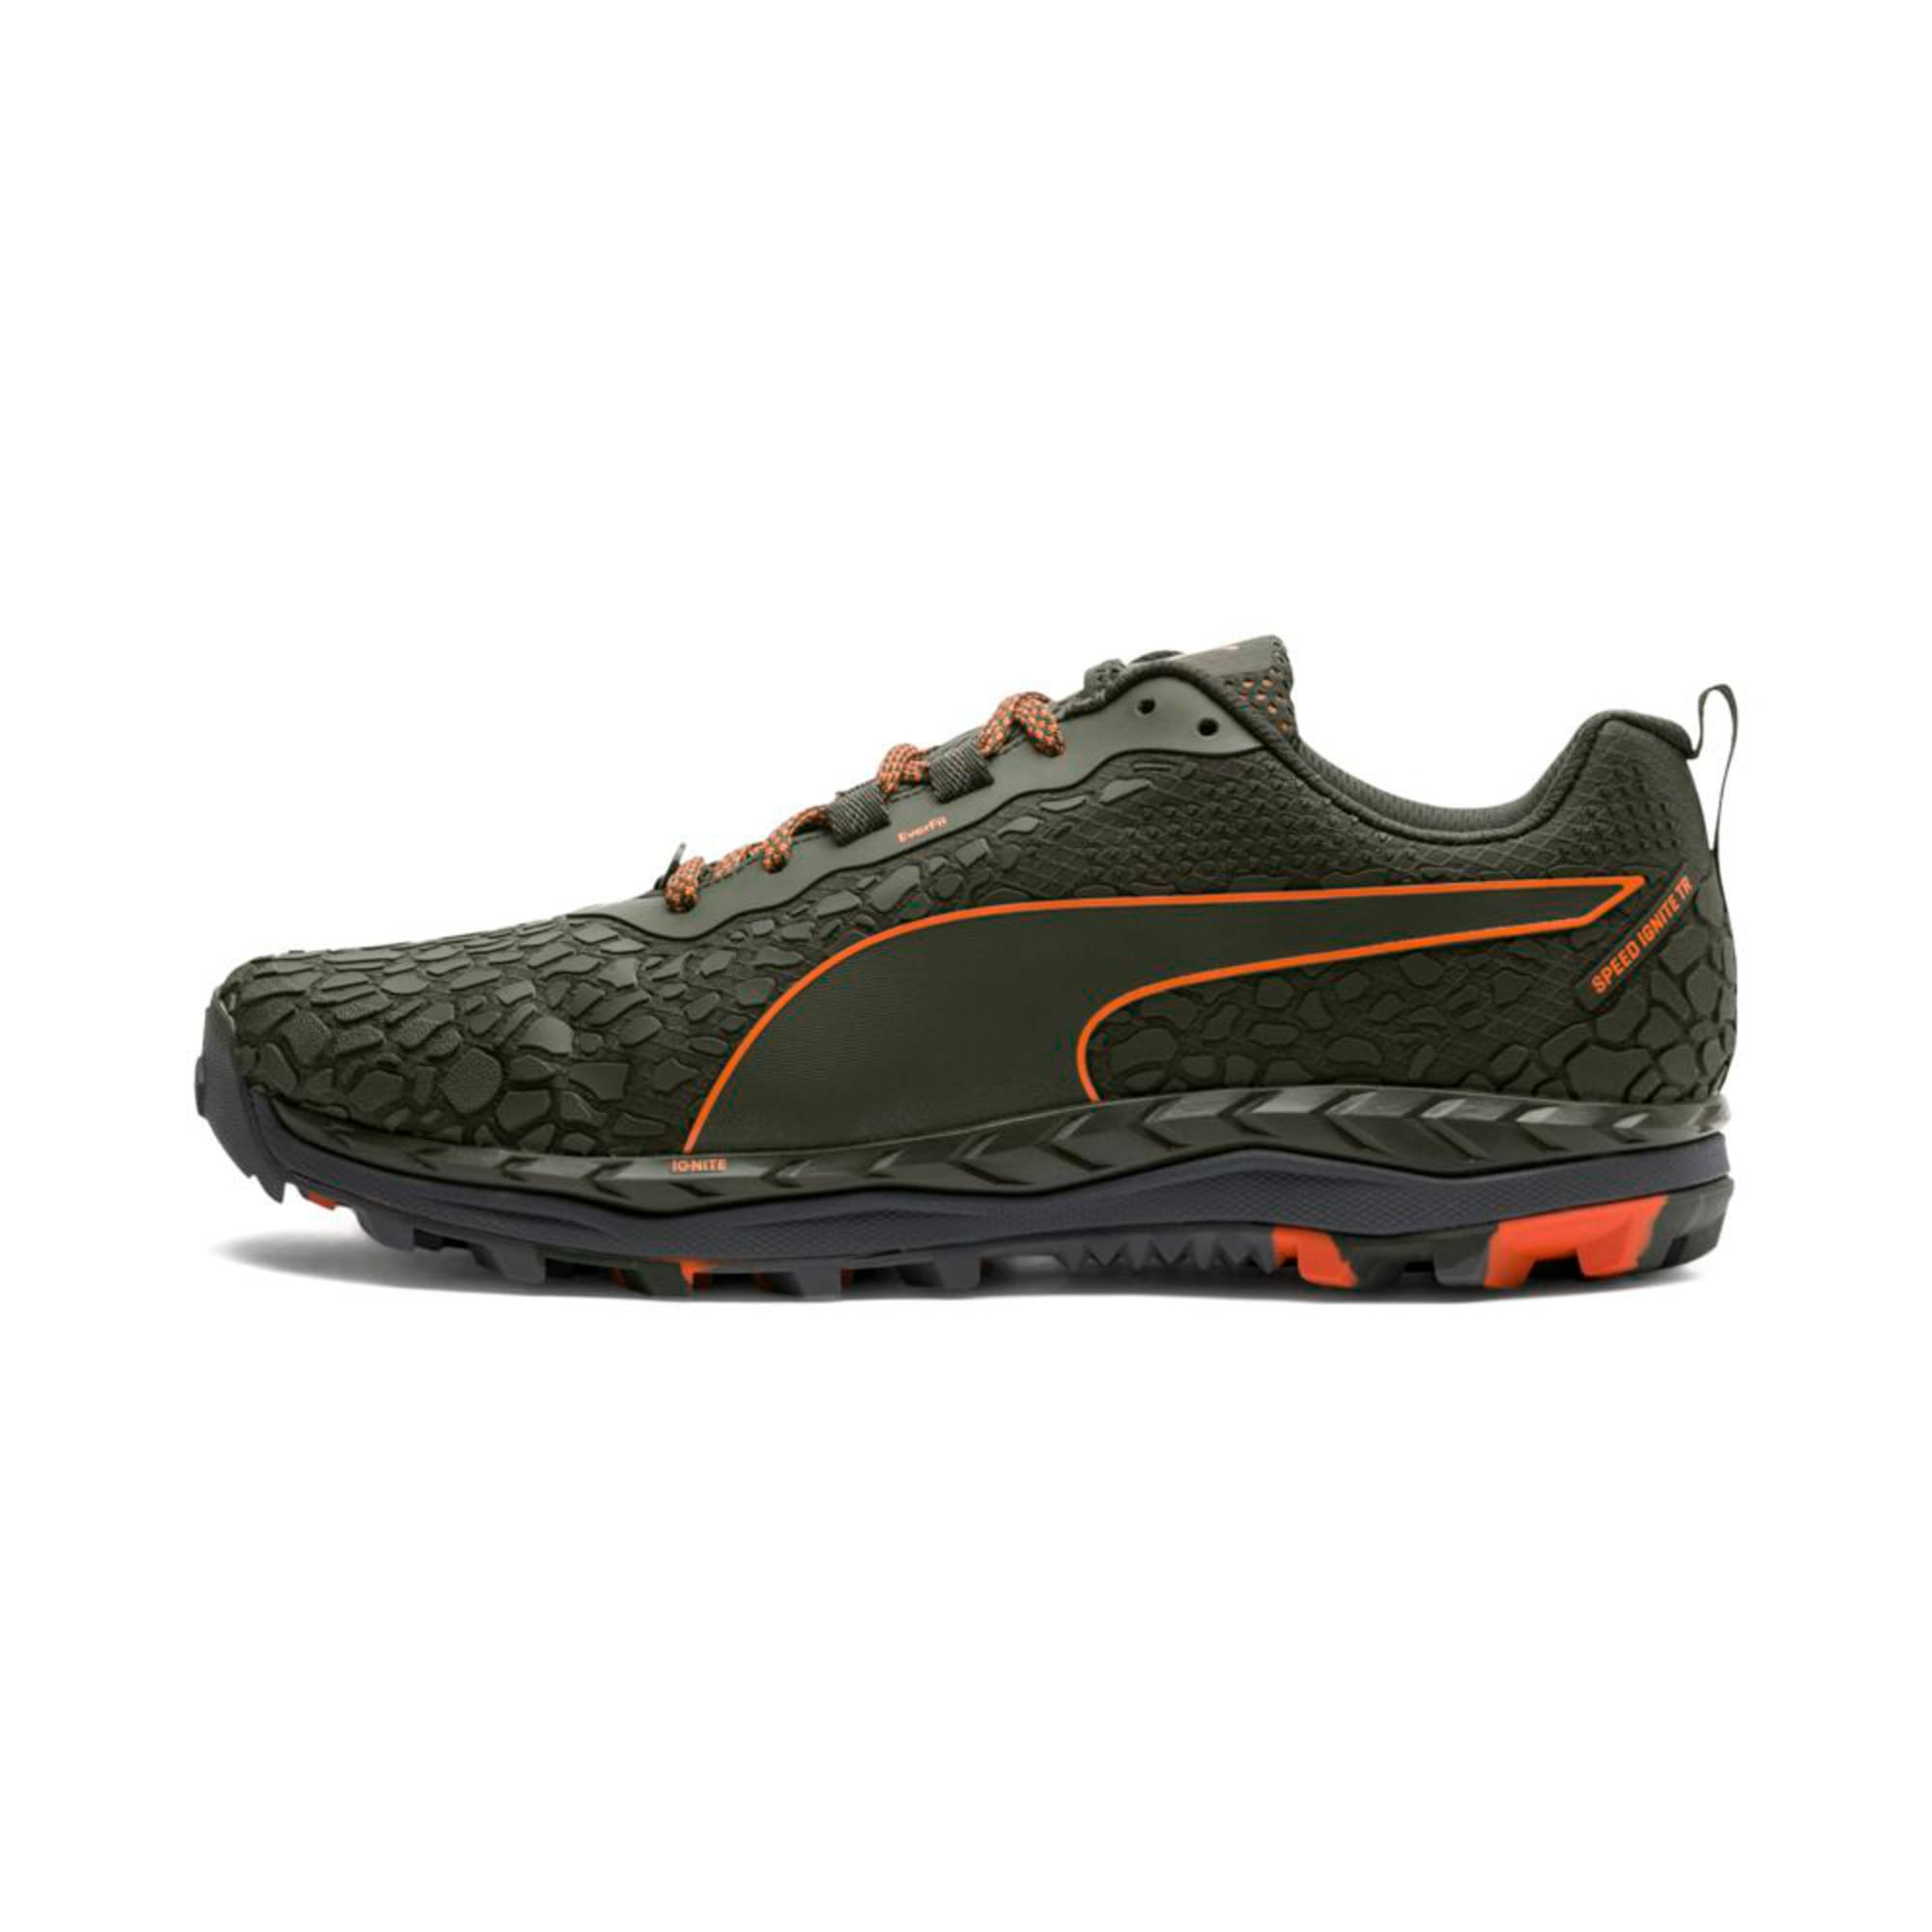 Thumbnail 1 of Speed IGNITE Trail 2 Men's Running Shoes, Forest Night-Firecracker, medium-IND